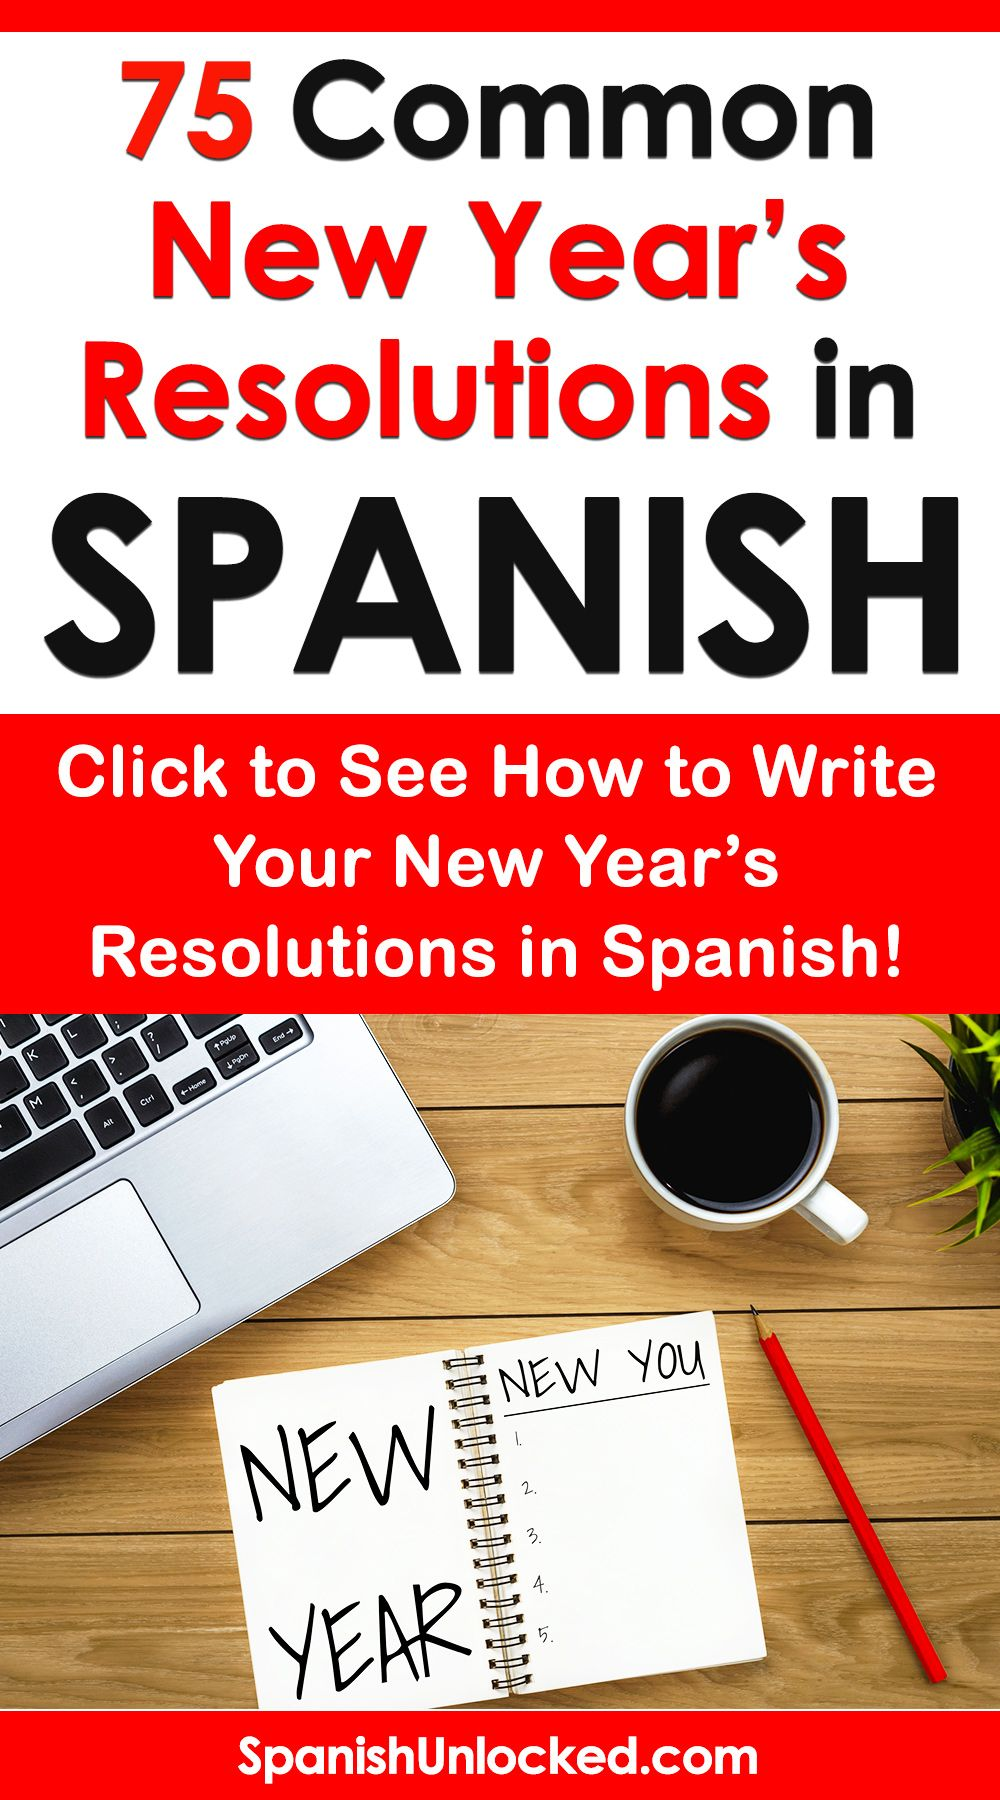 Learn SPANISH this year! New year resolutions ideas in